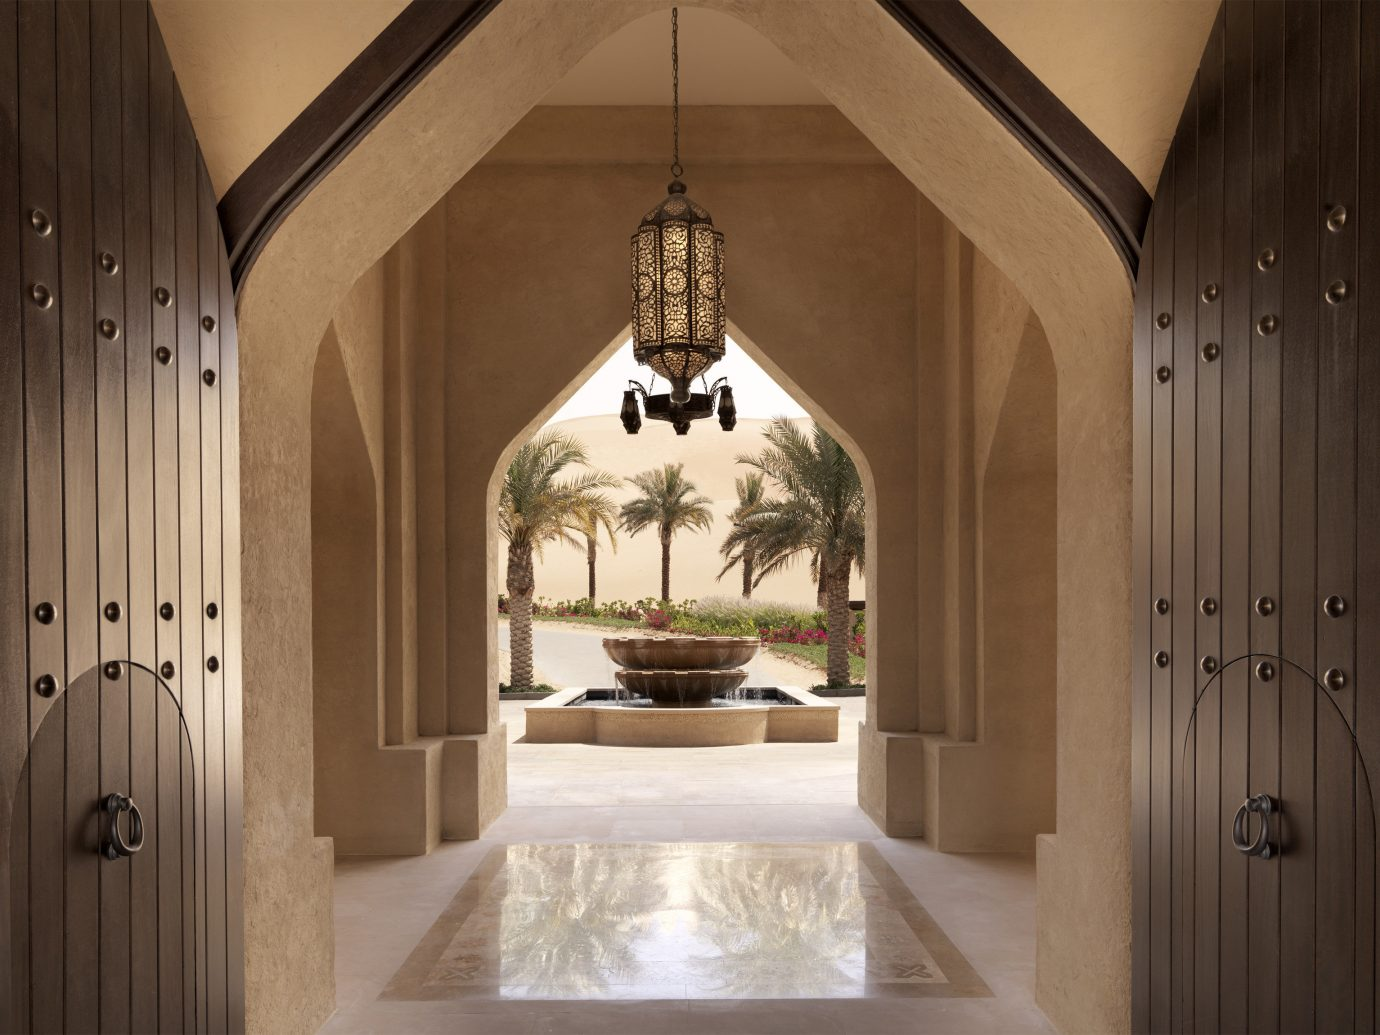 Beauty Trip Ideas wall indoor room building house estate Architecture interior design lighting chapel home ceiling mansion hall Design